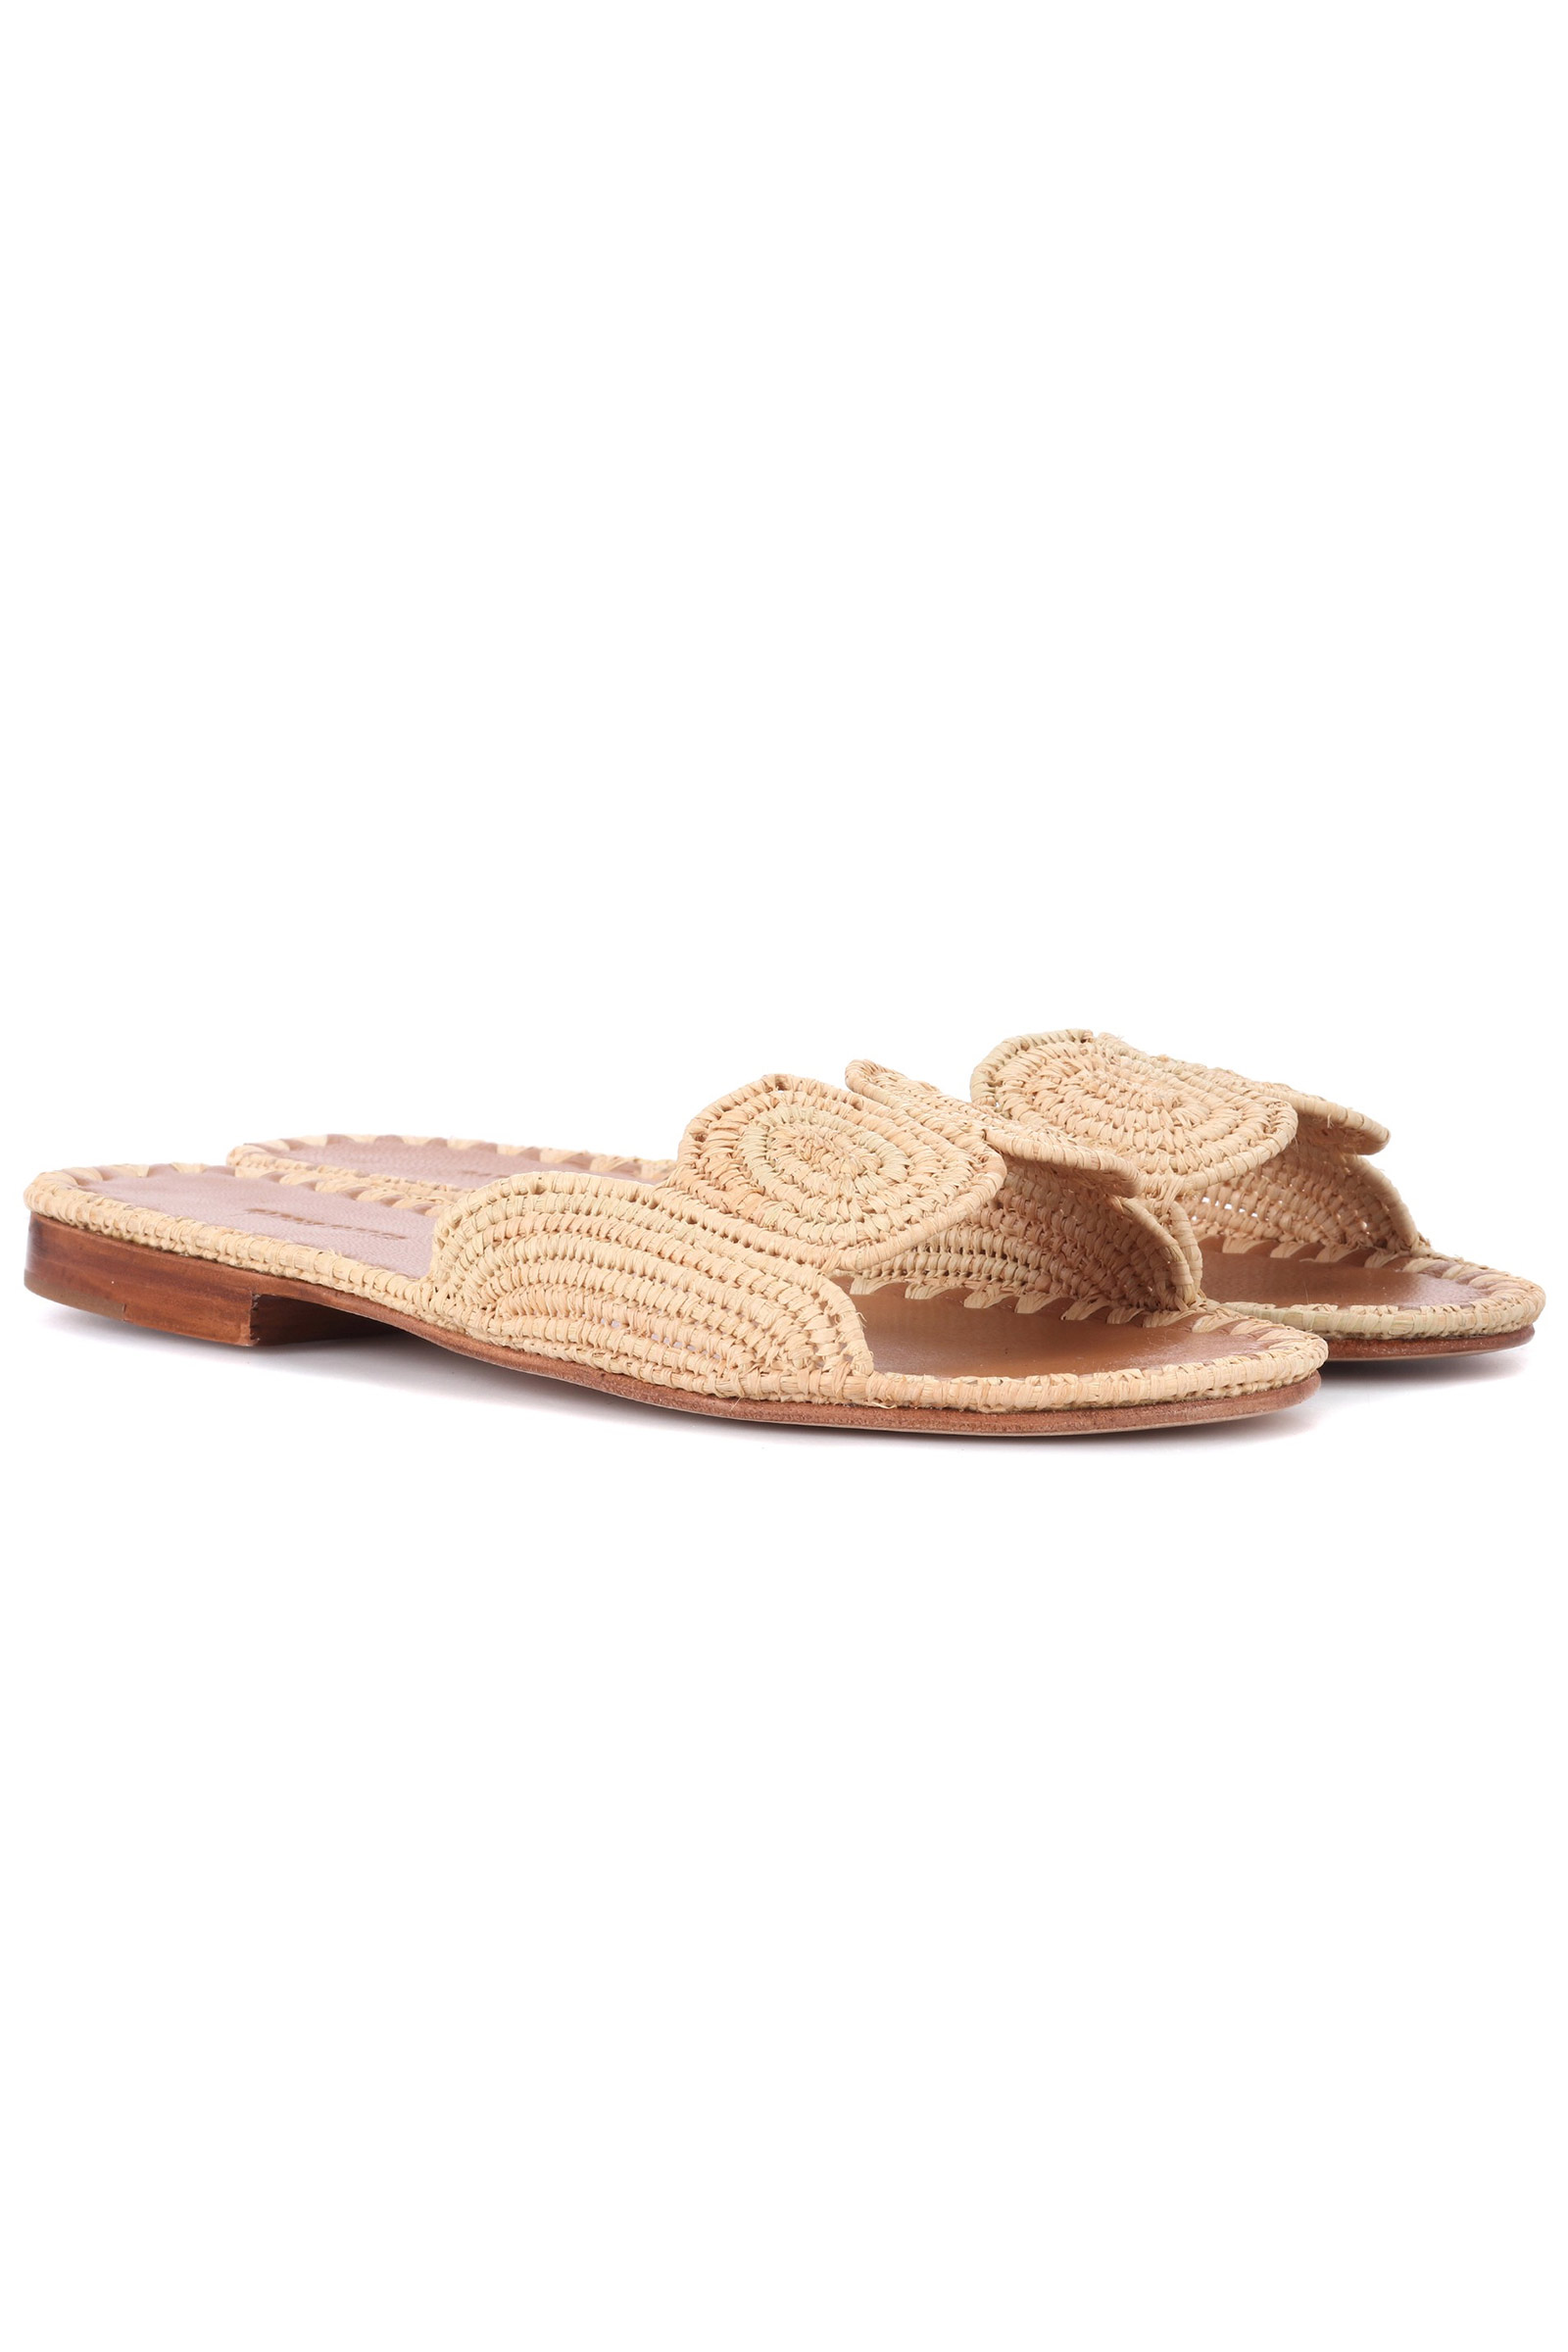 Click to Buy Carrie Forbes Straw Sliders